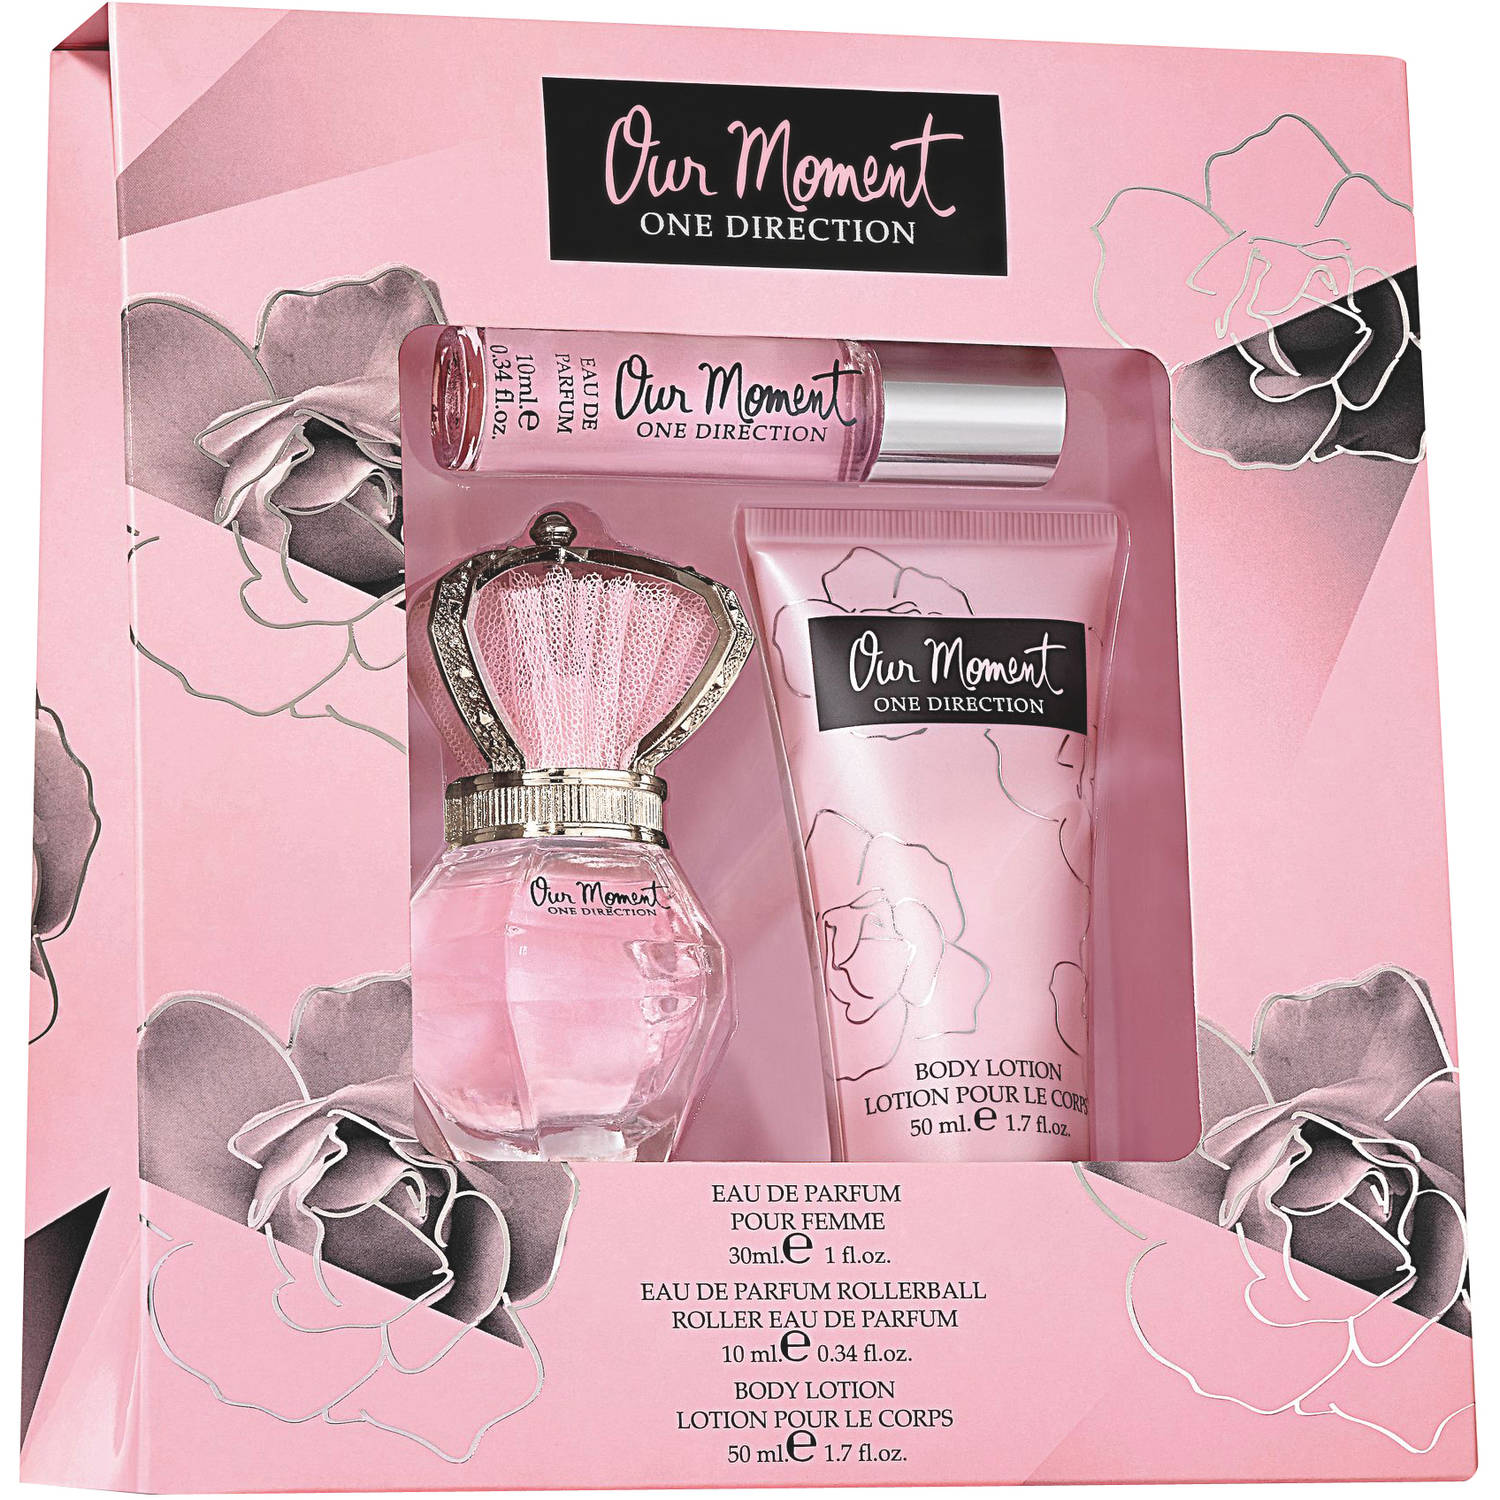 One Direction Our Moment for Women Fragrance Gift Set, 3 pc